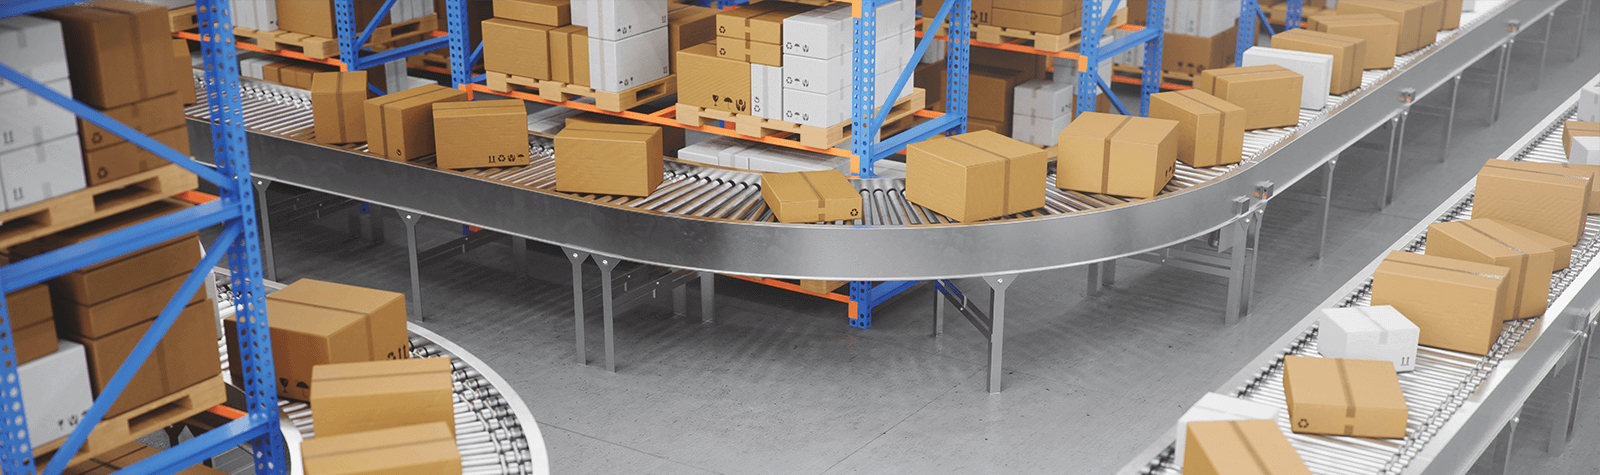 Distribution Center Security: Protecting Your Investment